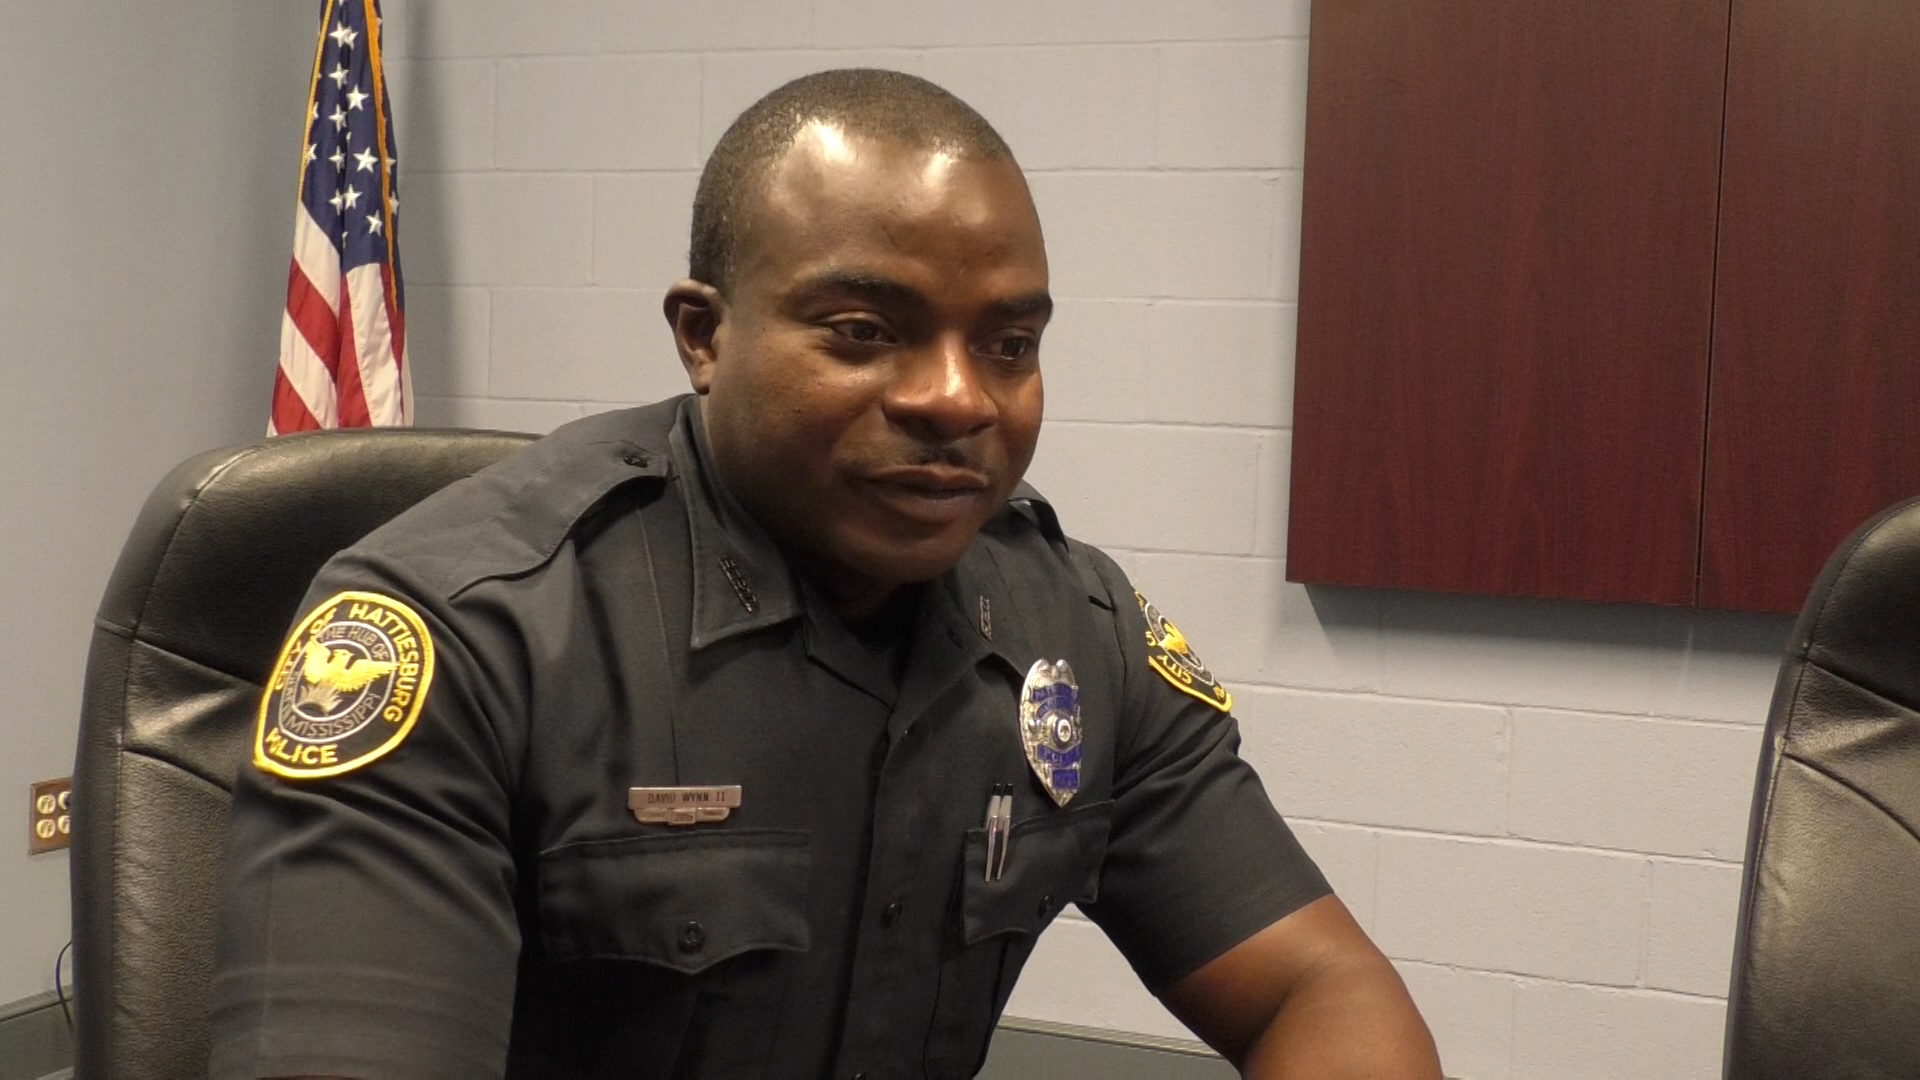 Off duty HPD officer helps solve multi-million dollar crime ring